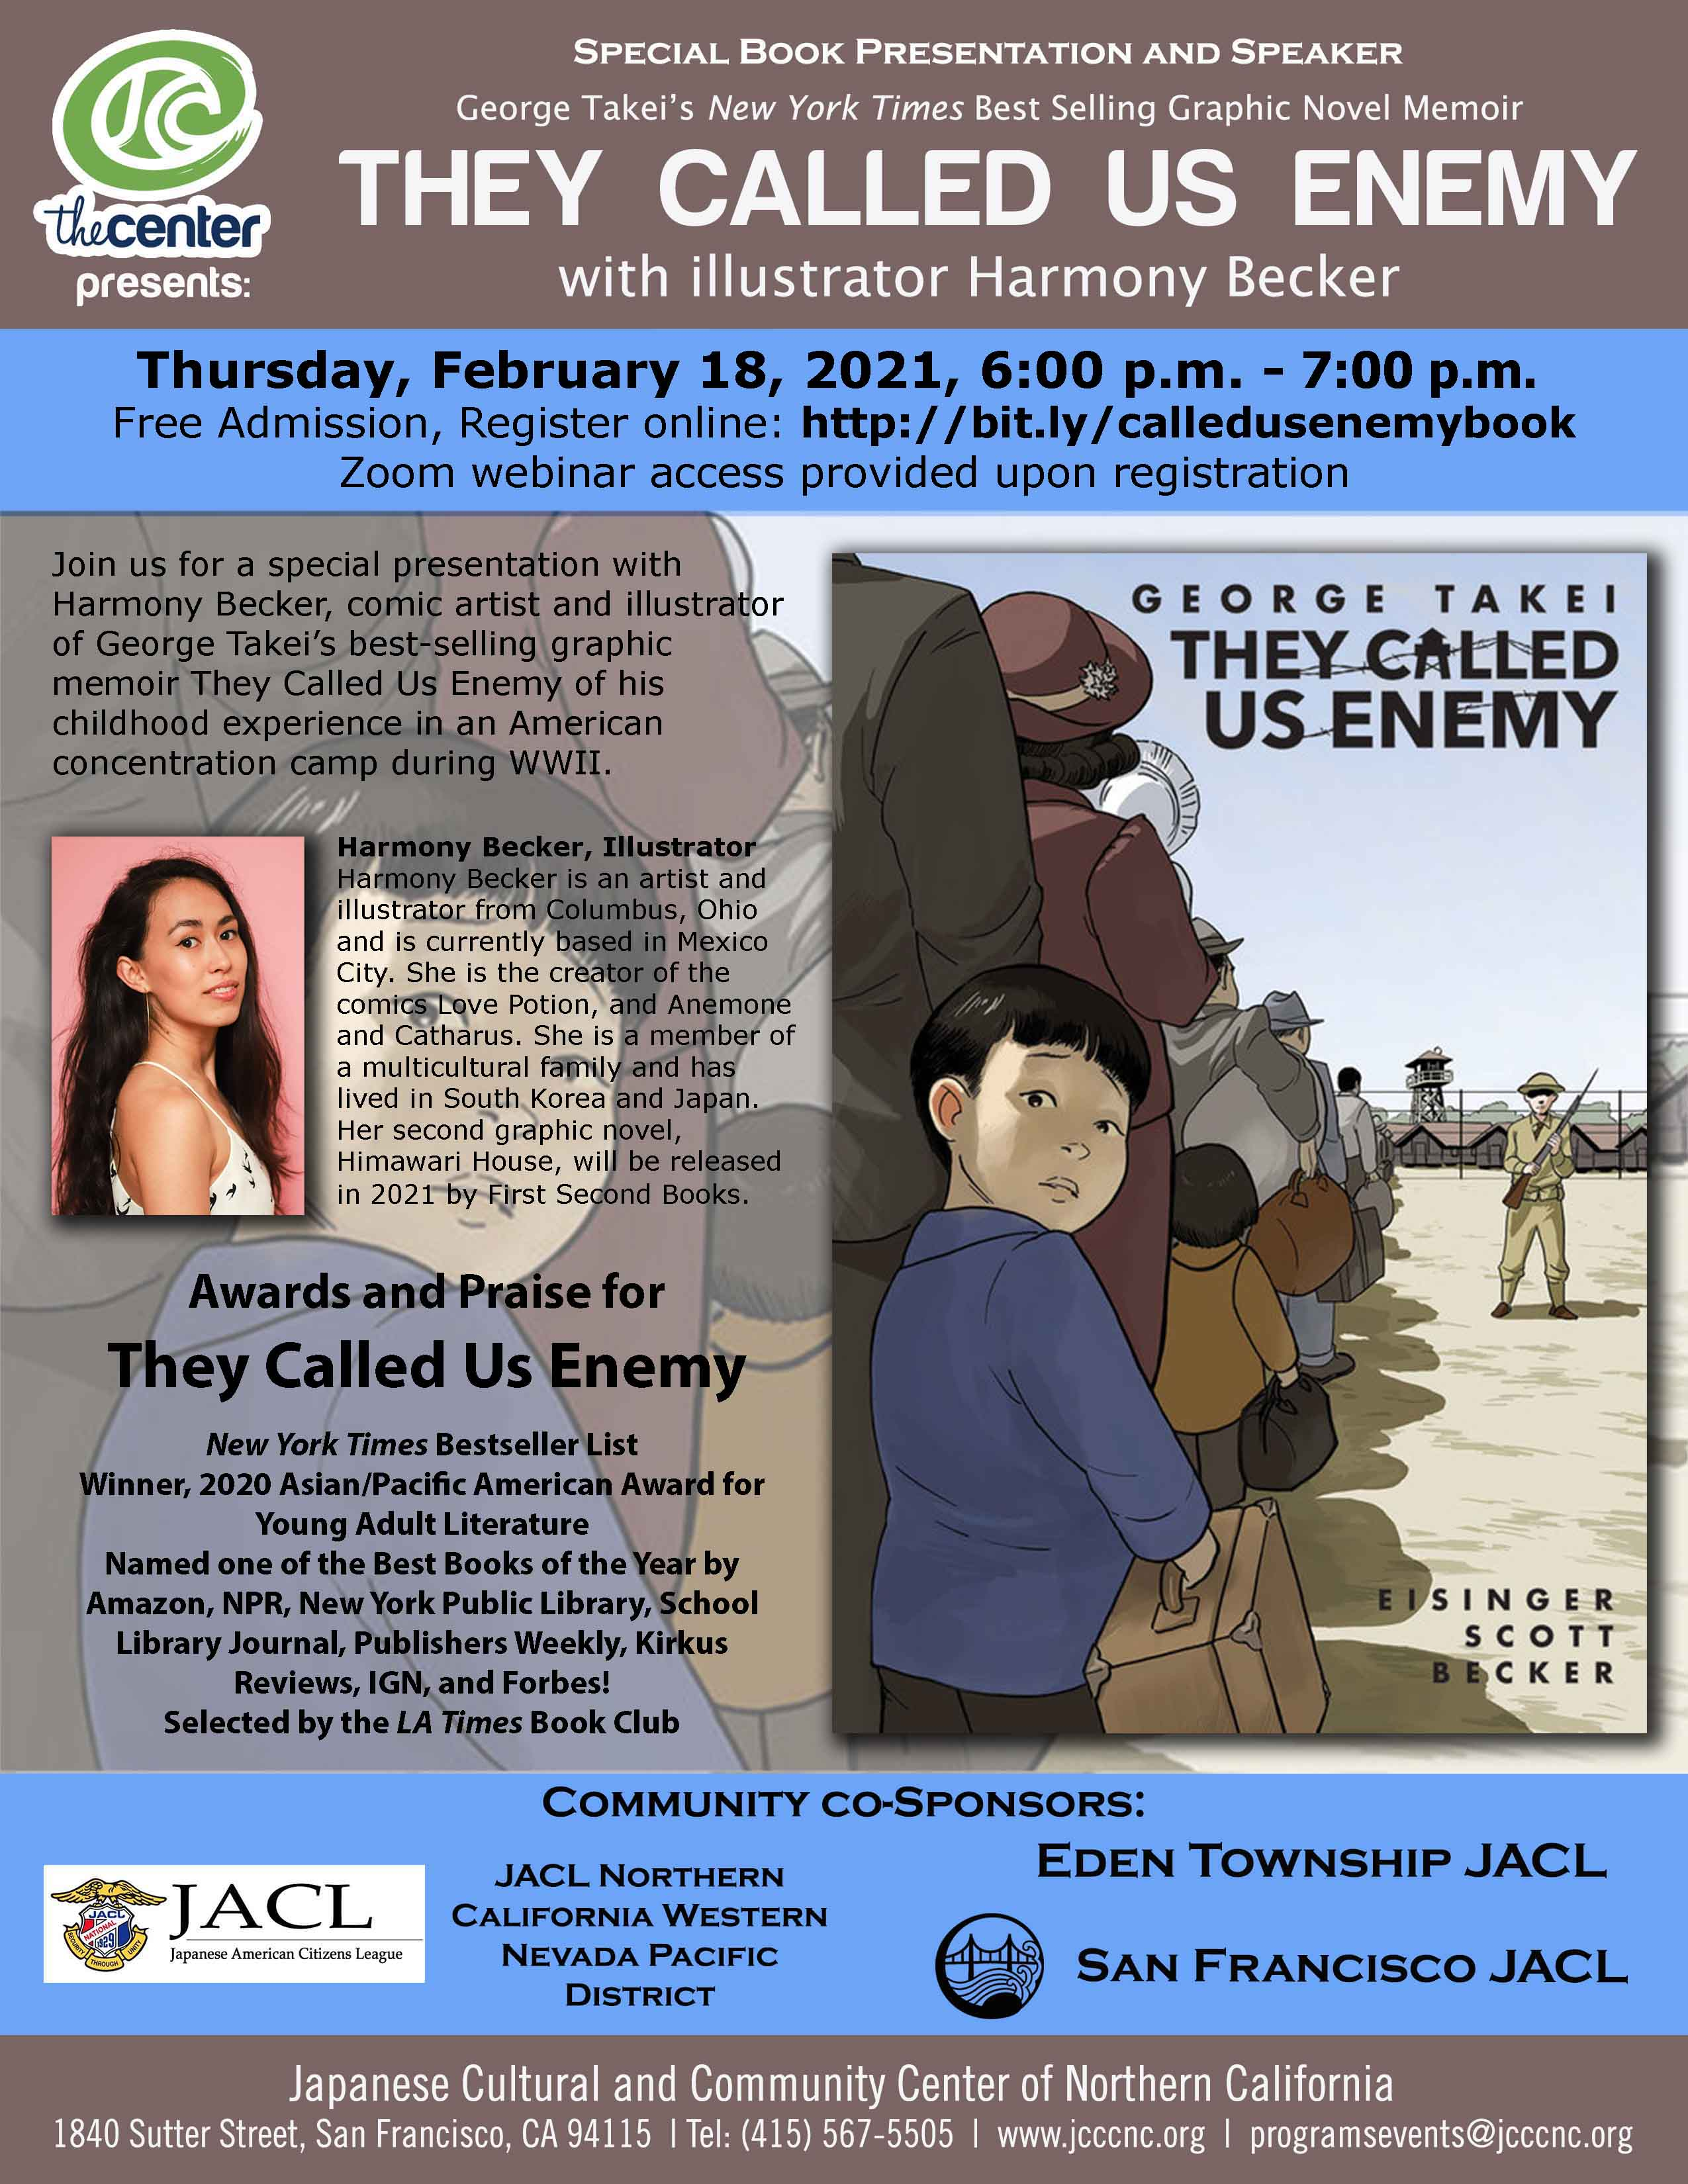 They Called Us Enemy – Book Presentation with Illustrator Harmony Becker